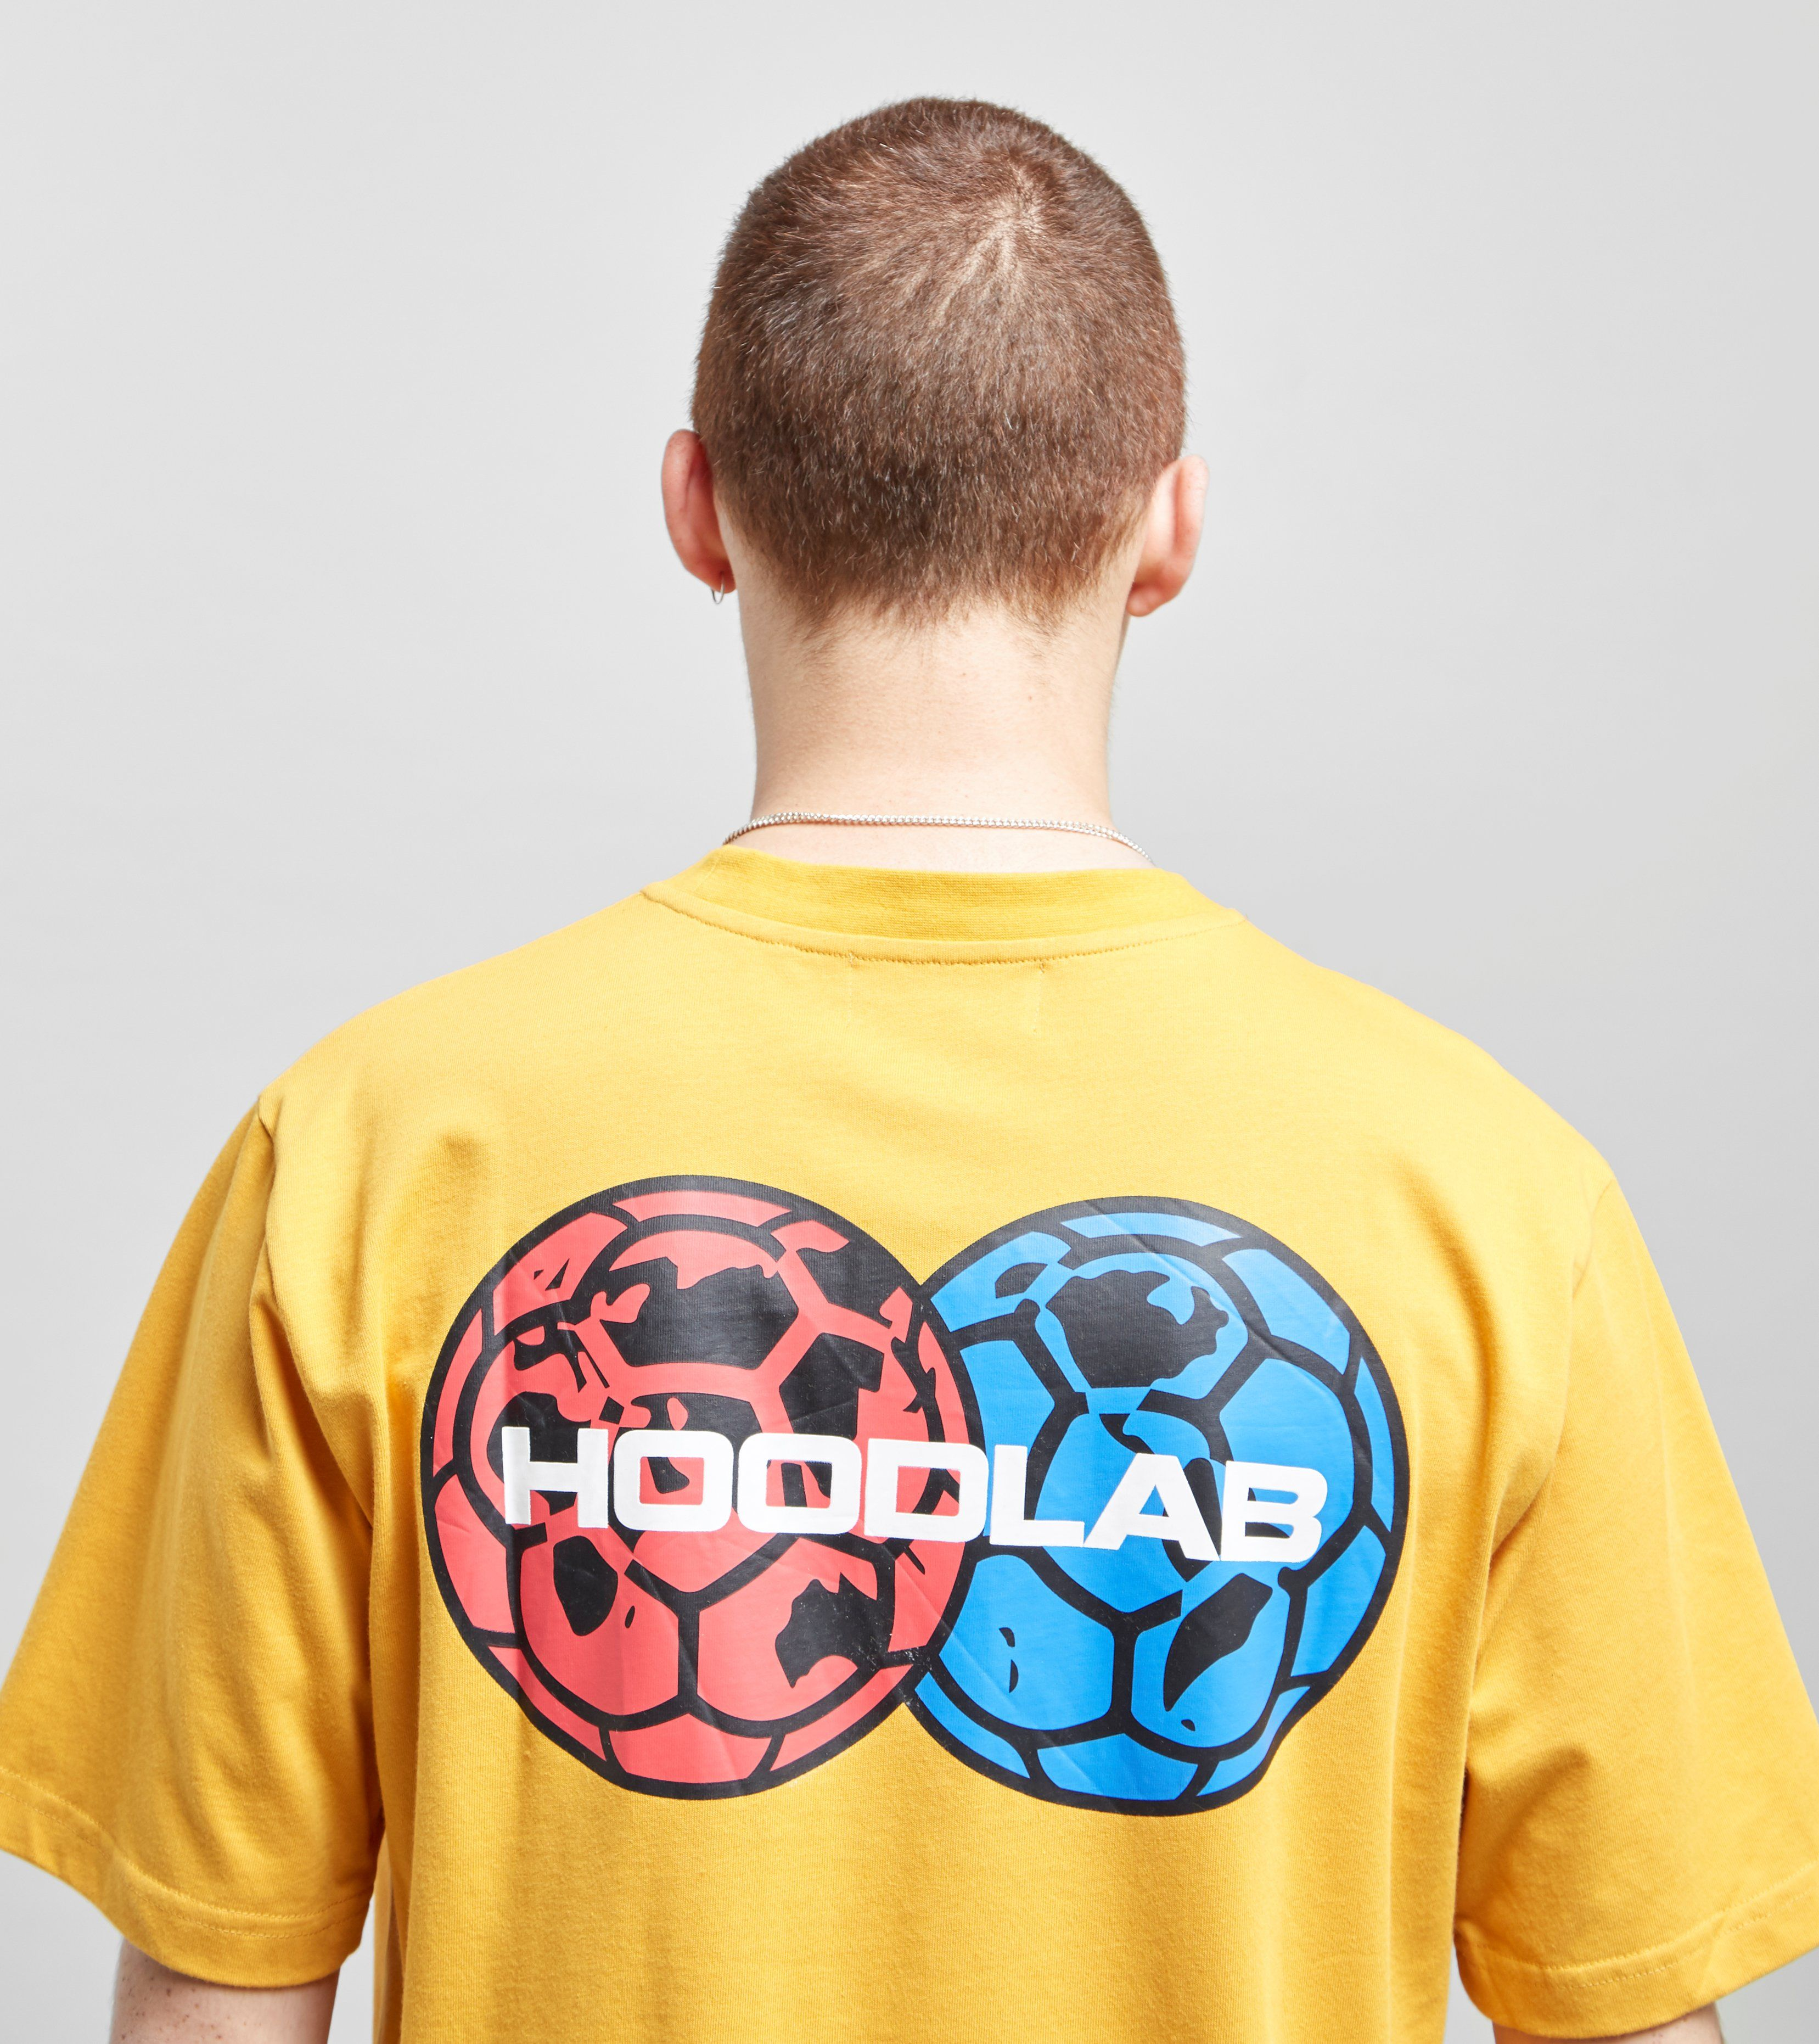 Hoodlab Inter-National T-Shirt